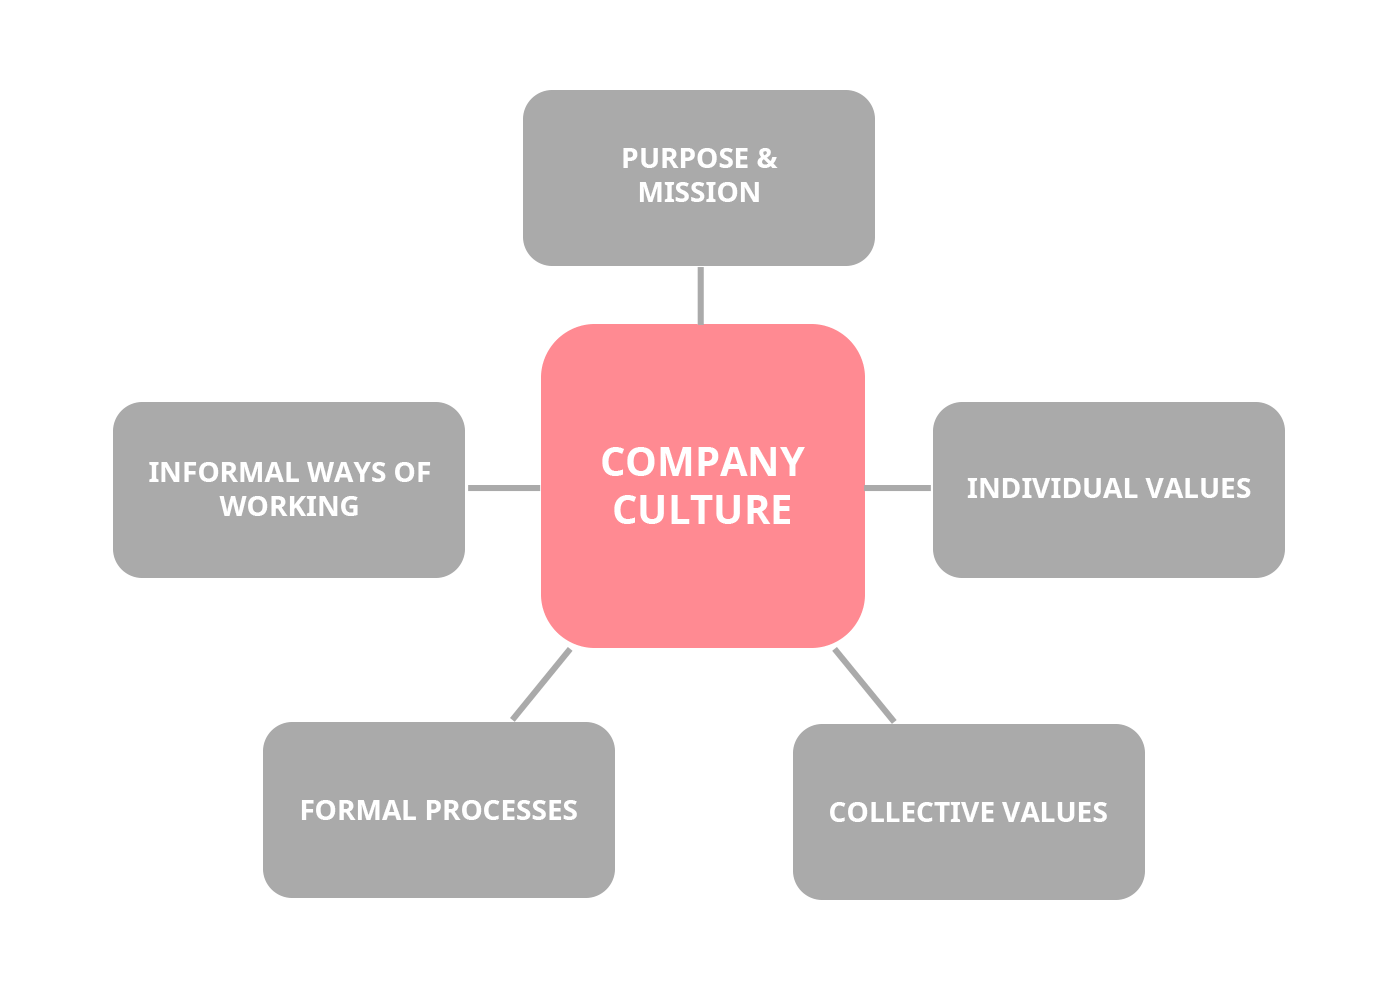 The factors affecting company culture